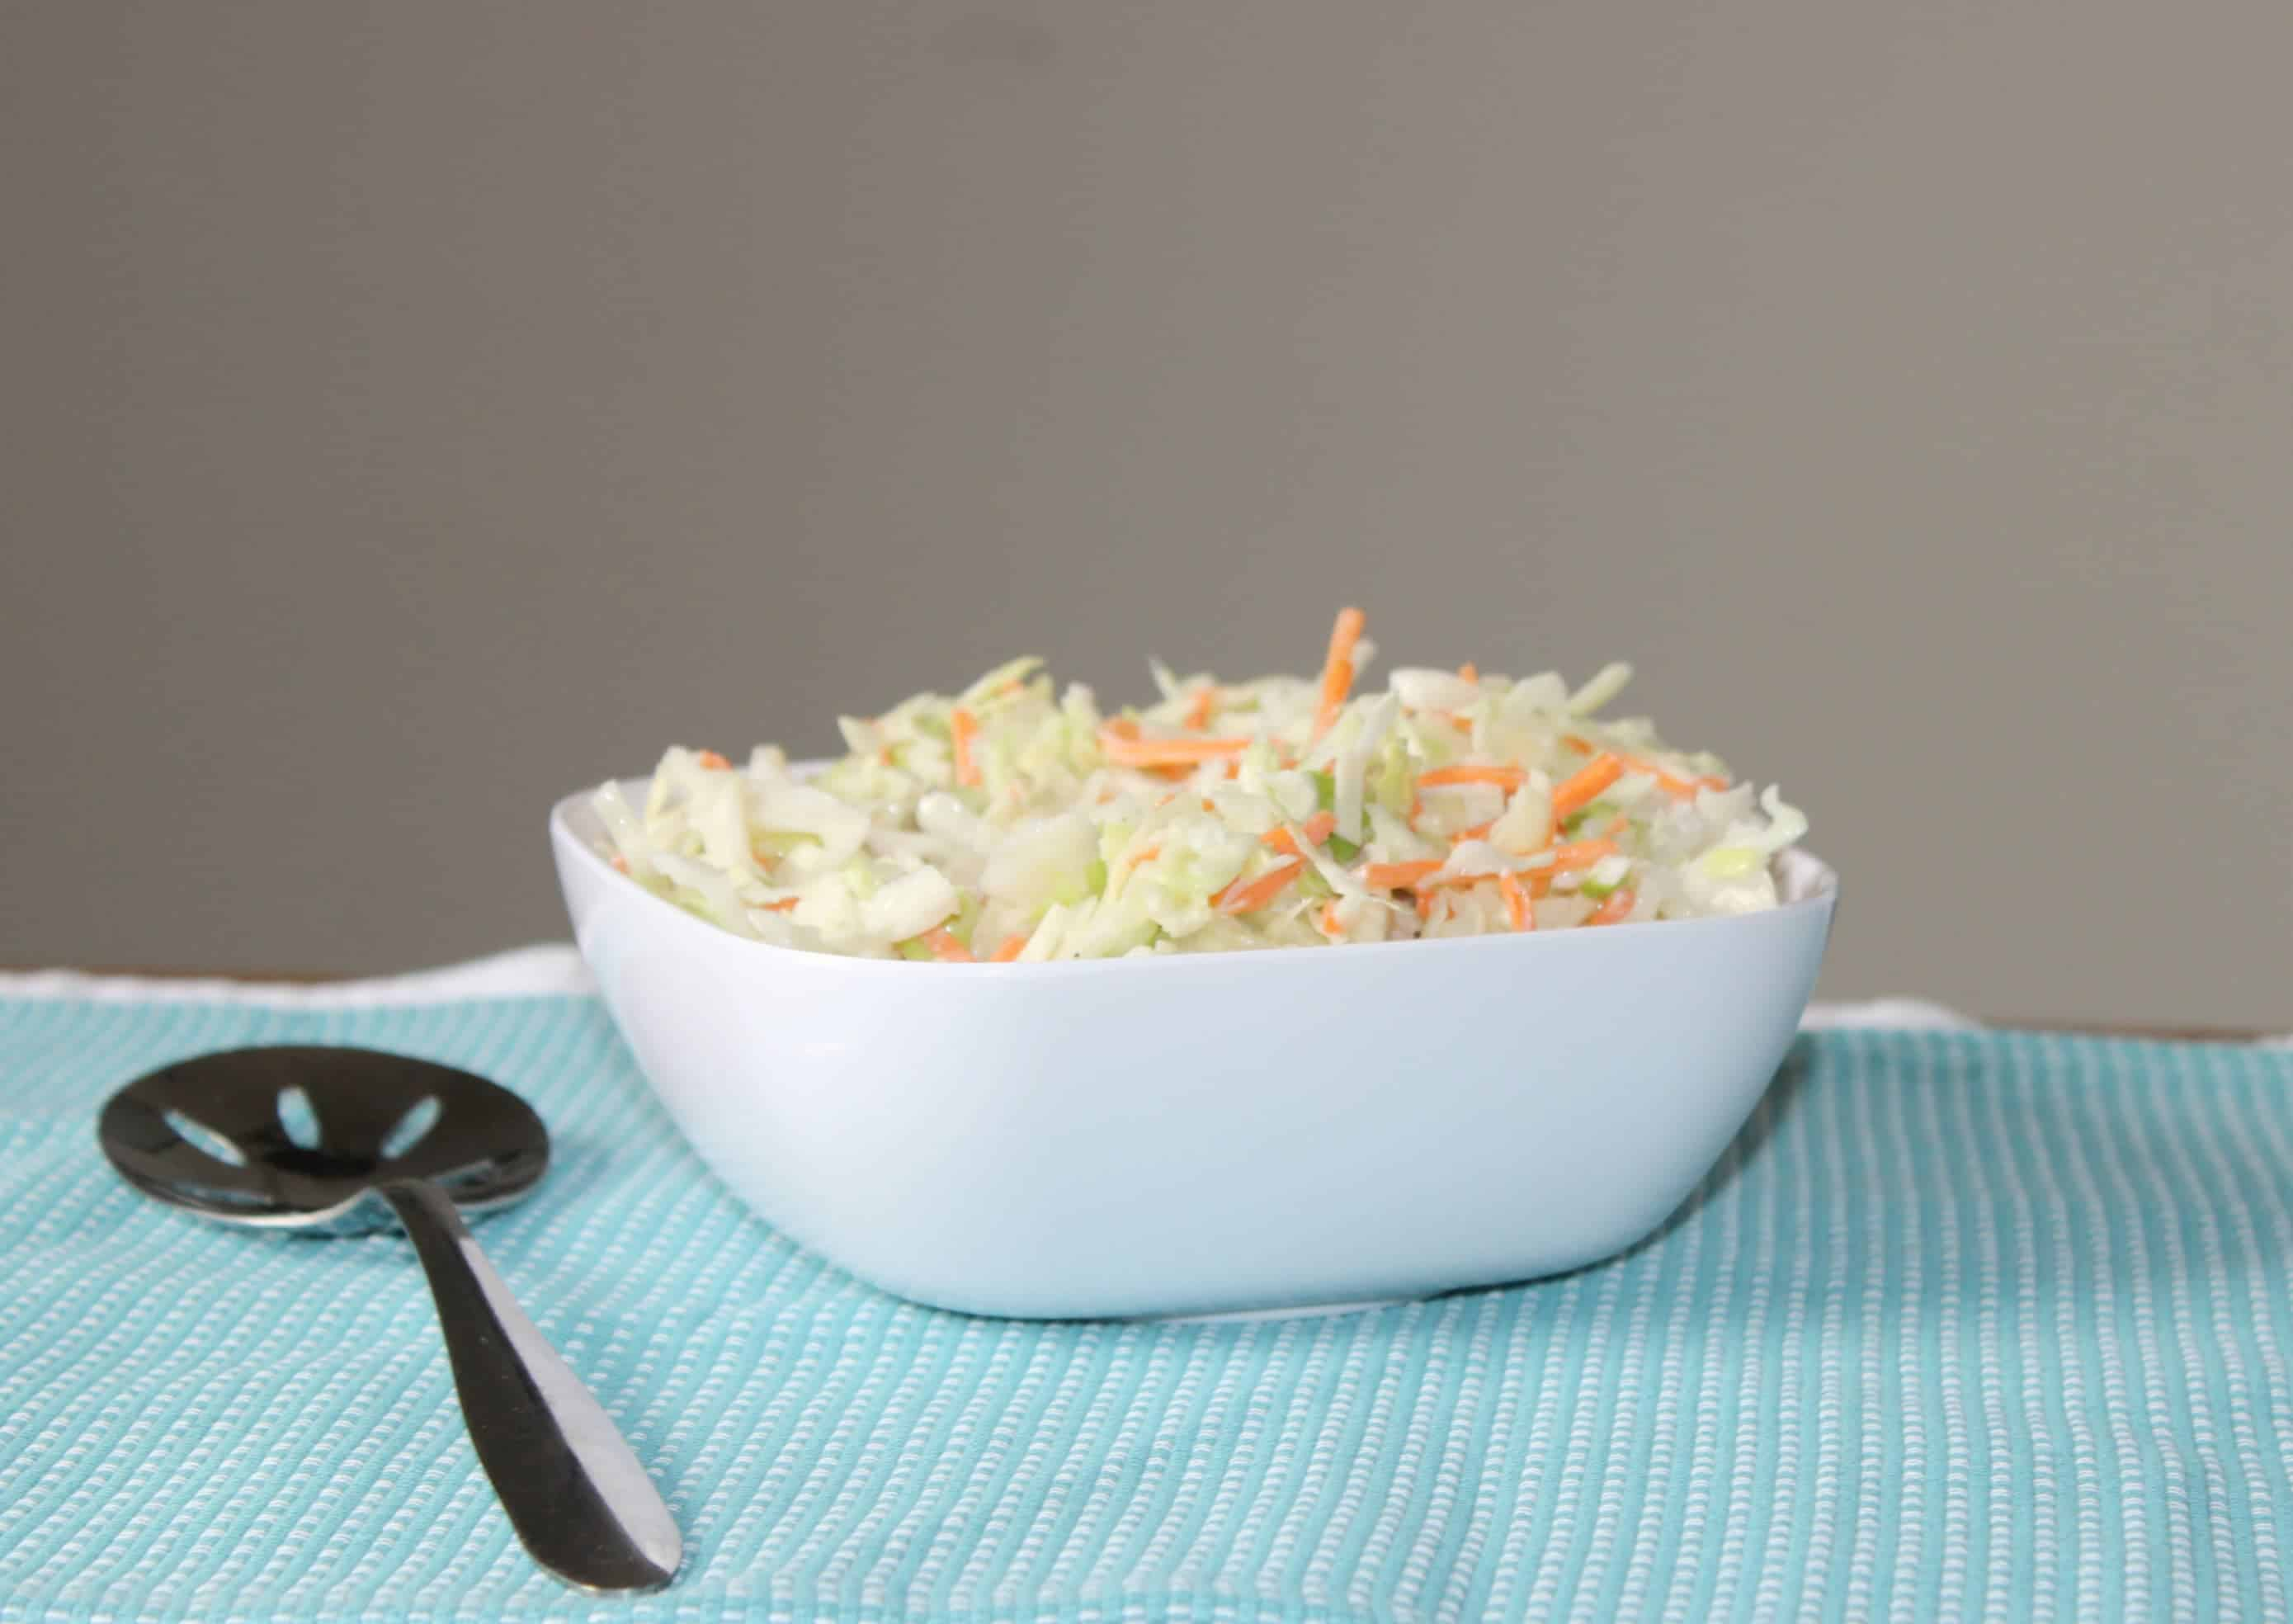 kfc coleslaw salad recipe